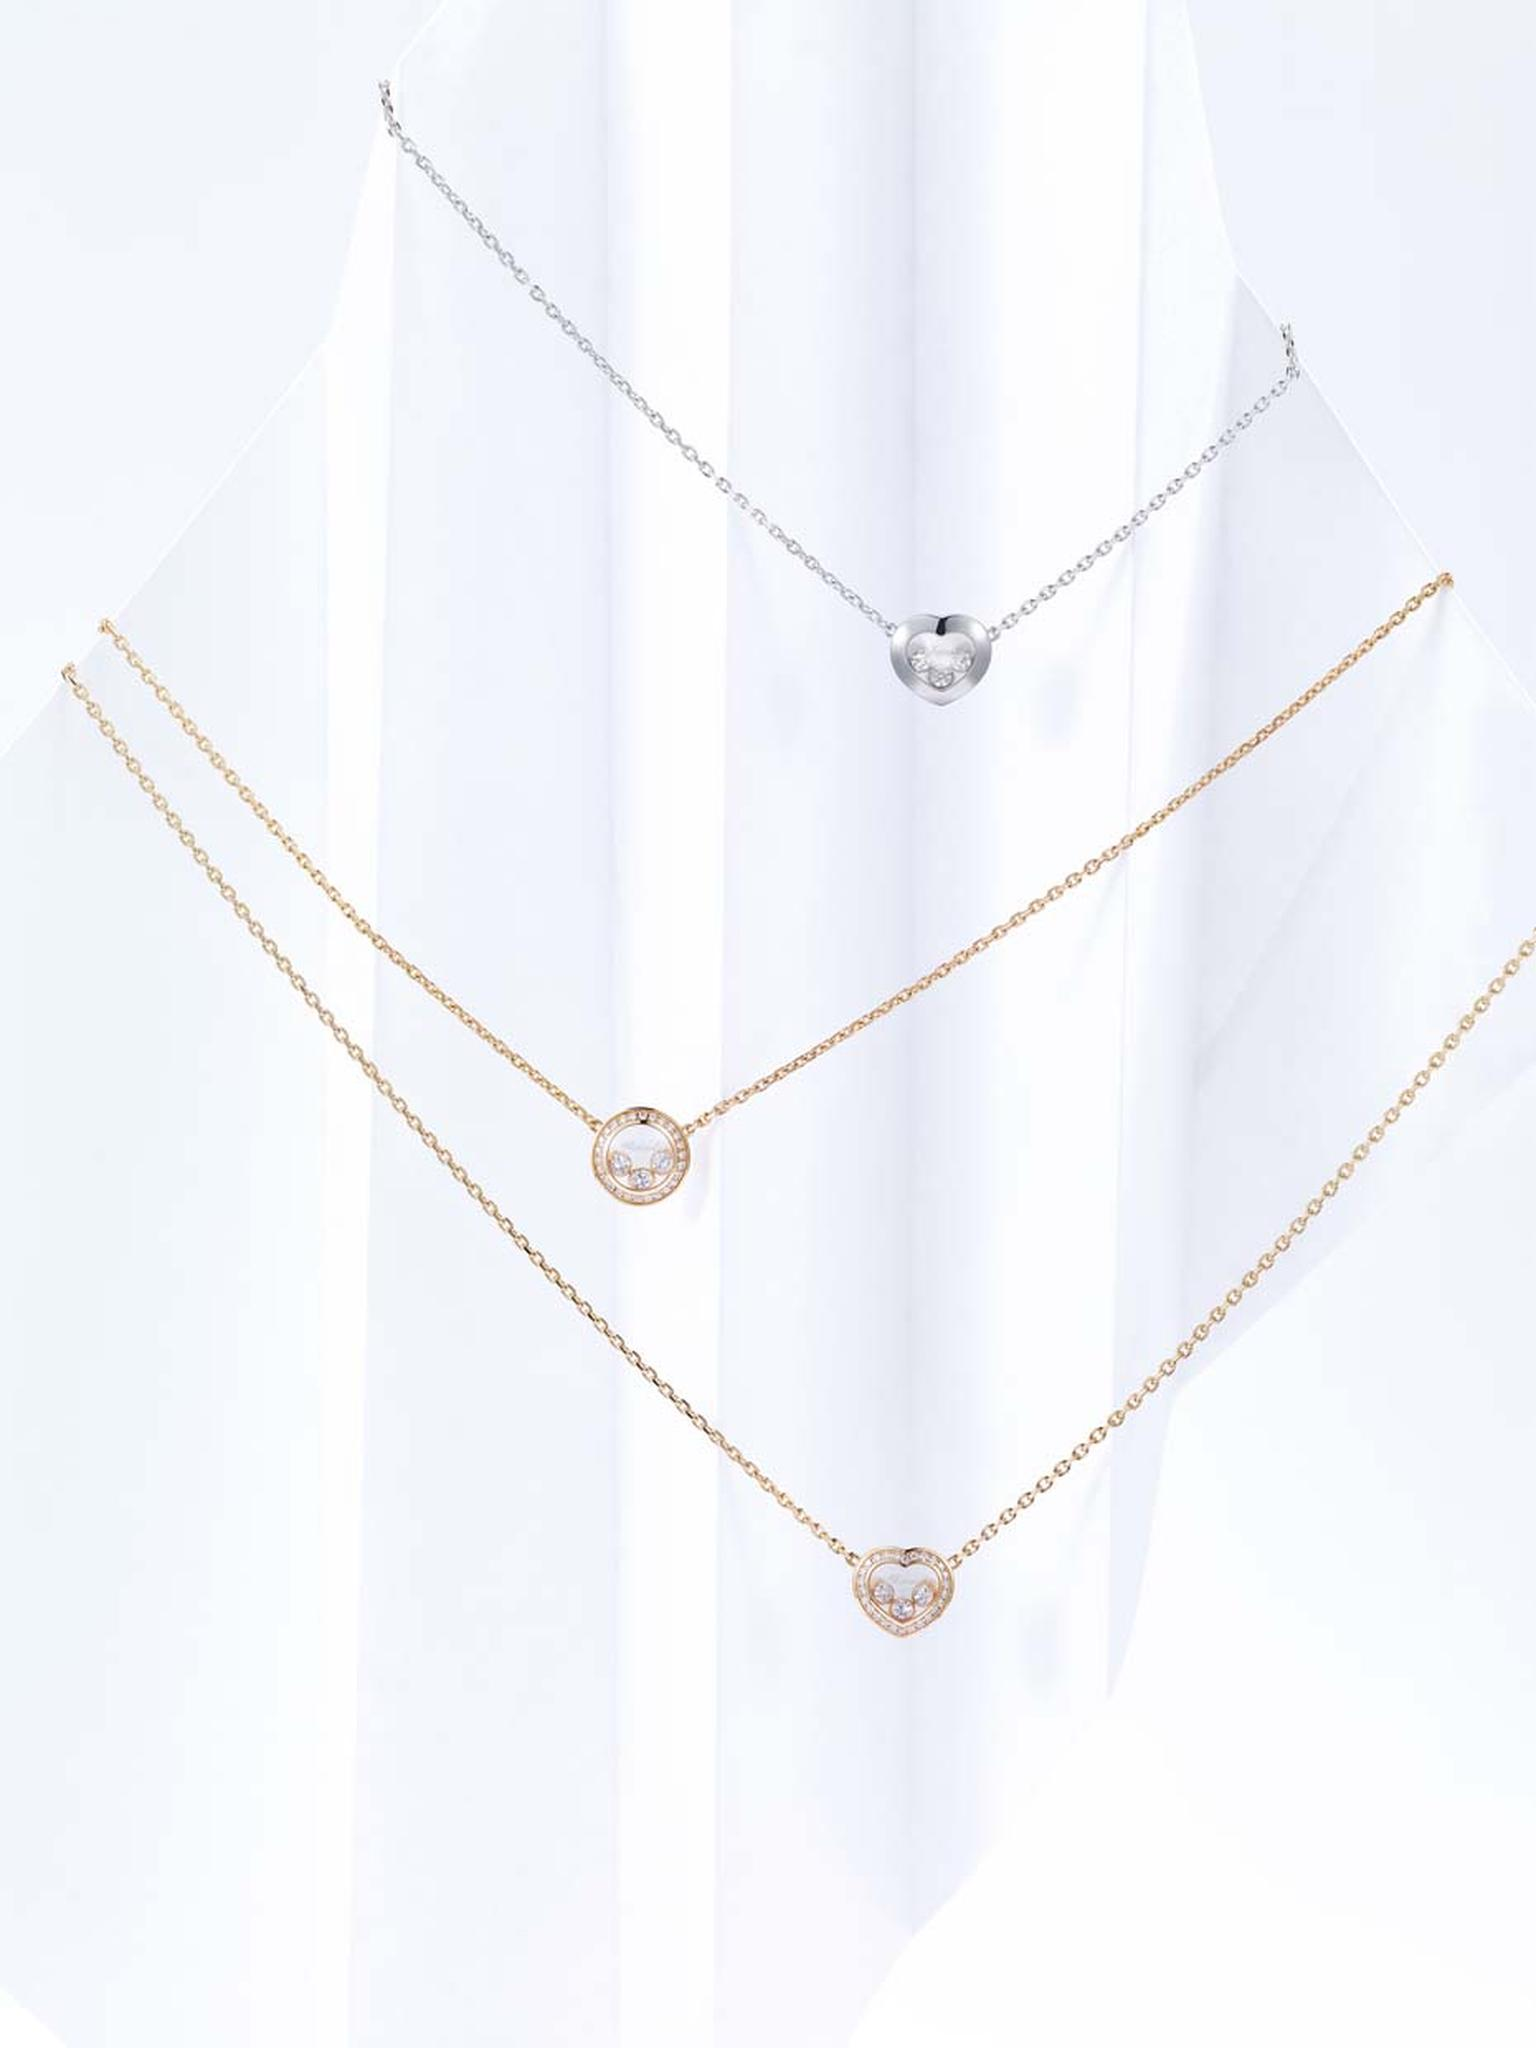 Chopard necklace from the Happy Curves collection in white or rose gold with either a circular or heart motif carrying three freely moving brilliant-cut diamonds.